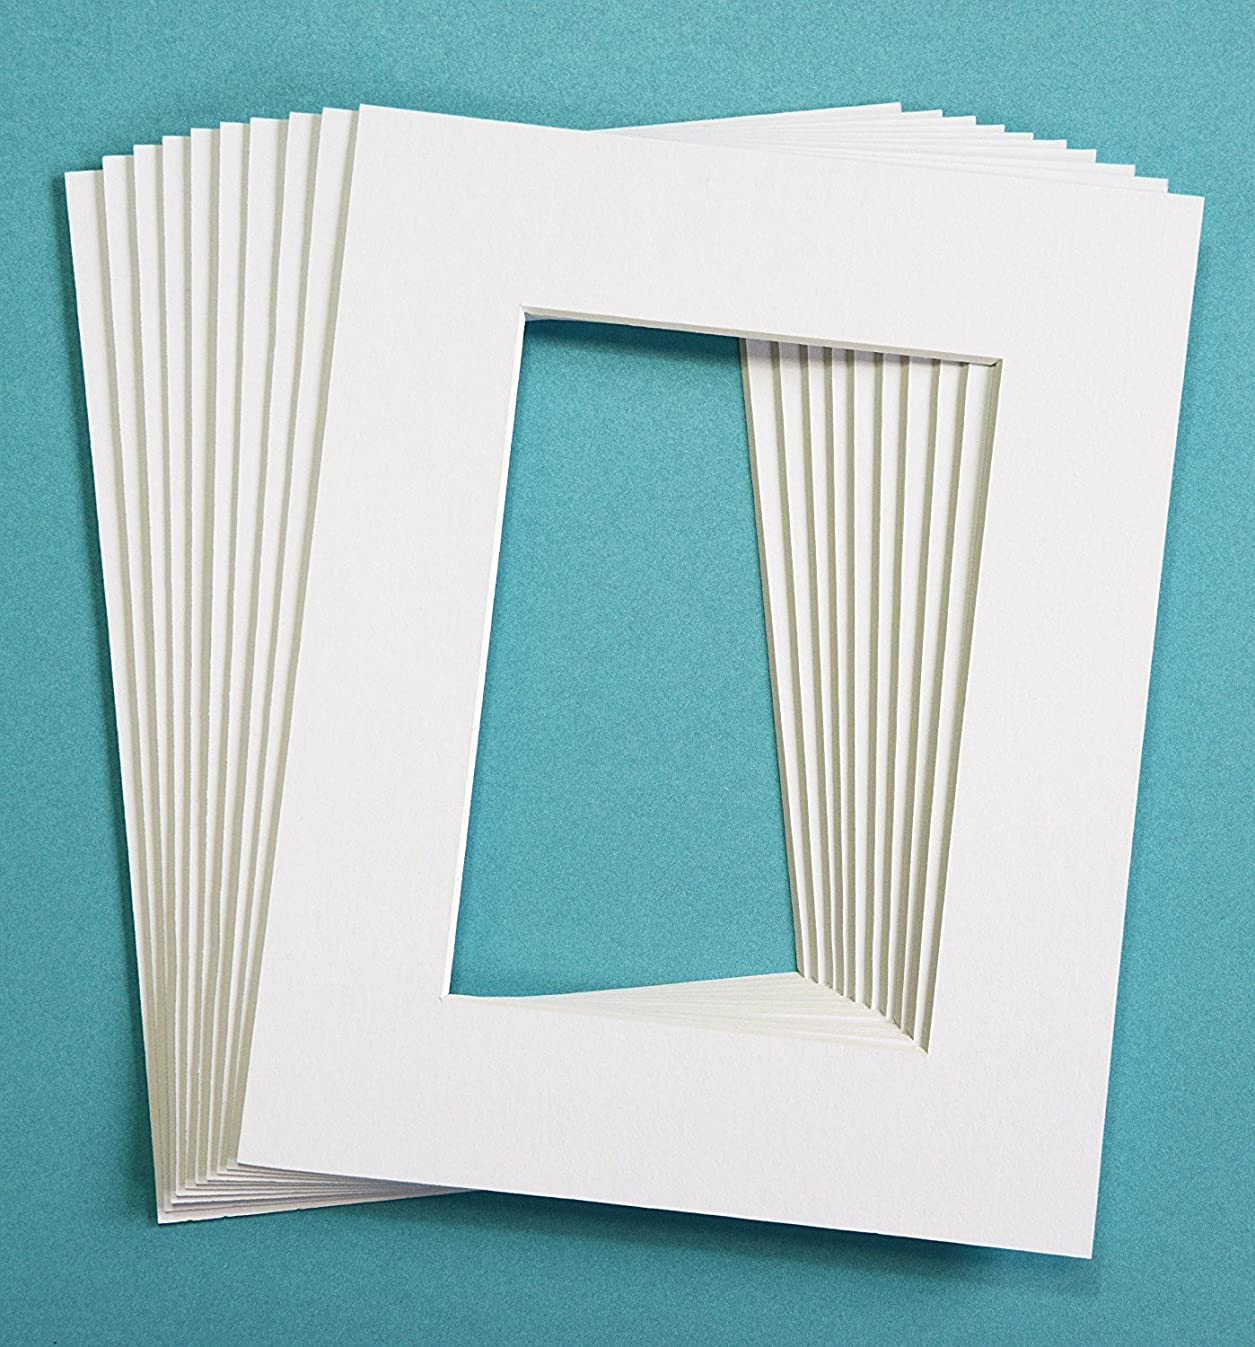 Pack of 10 WHITE 8x10 Picture Mats Matting with White Core Bevel Cut for 5x7 Pictures